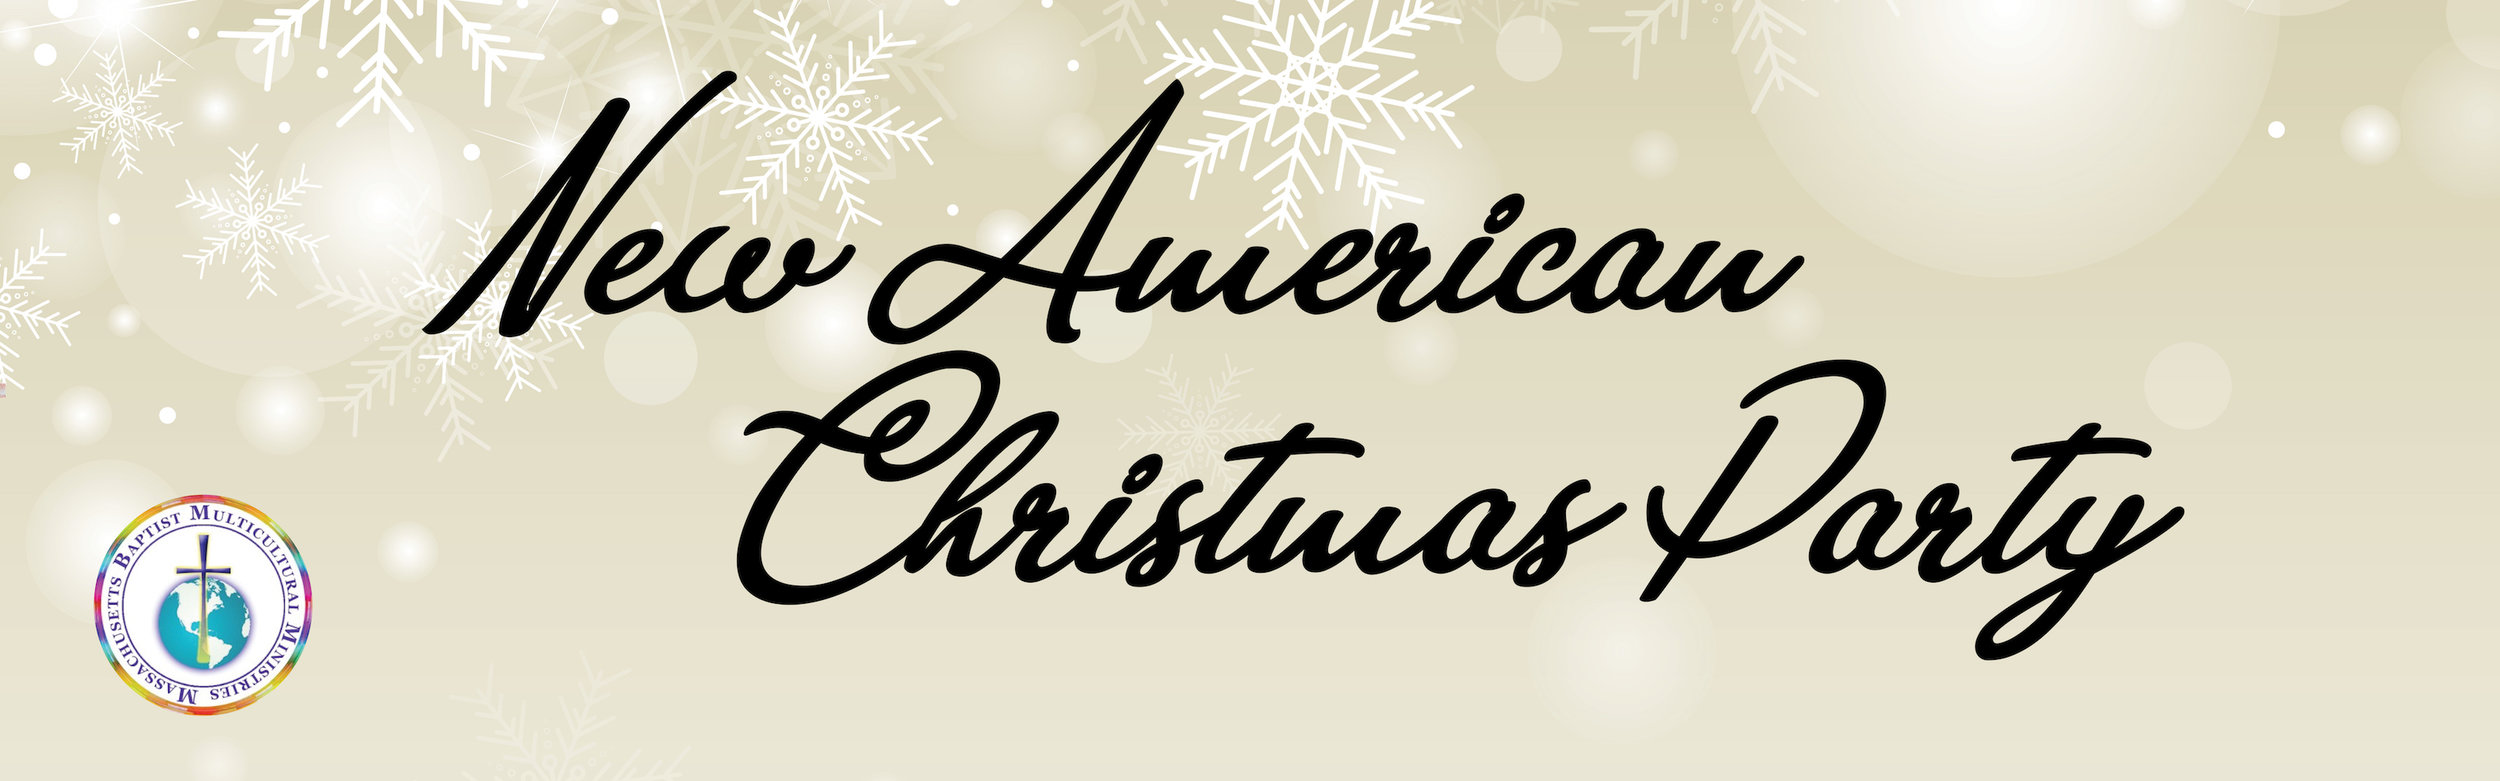 Web Header New American Christmas Party Banner.jpg